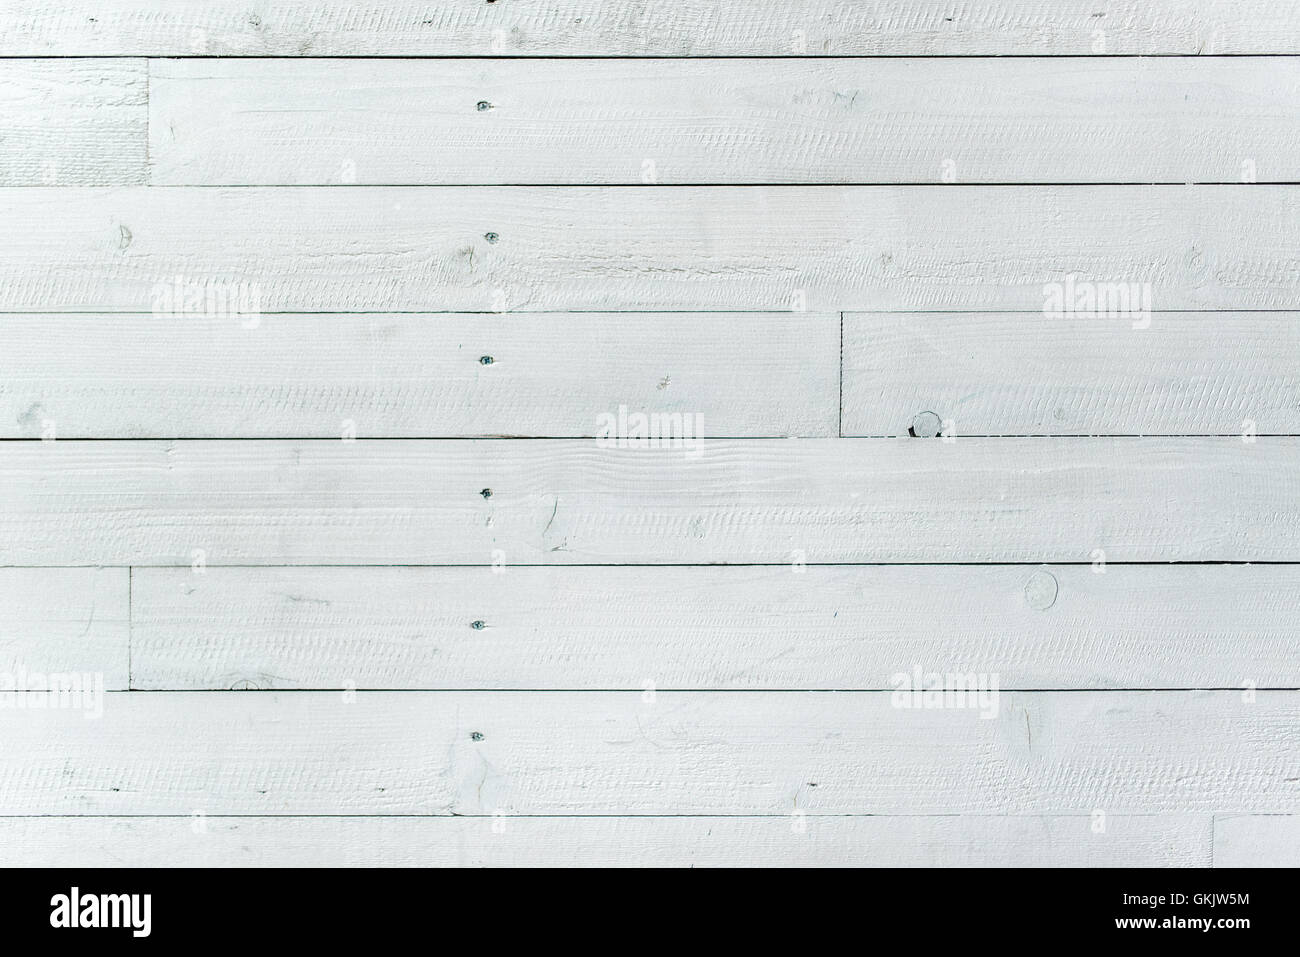 White planks surface texture, wooden board used for flooring - Stock Image